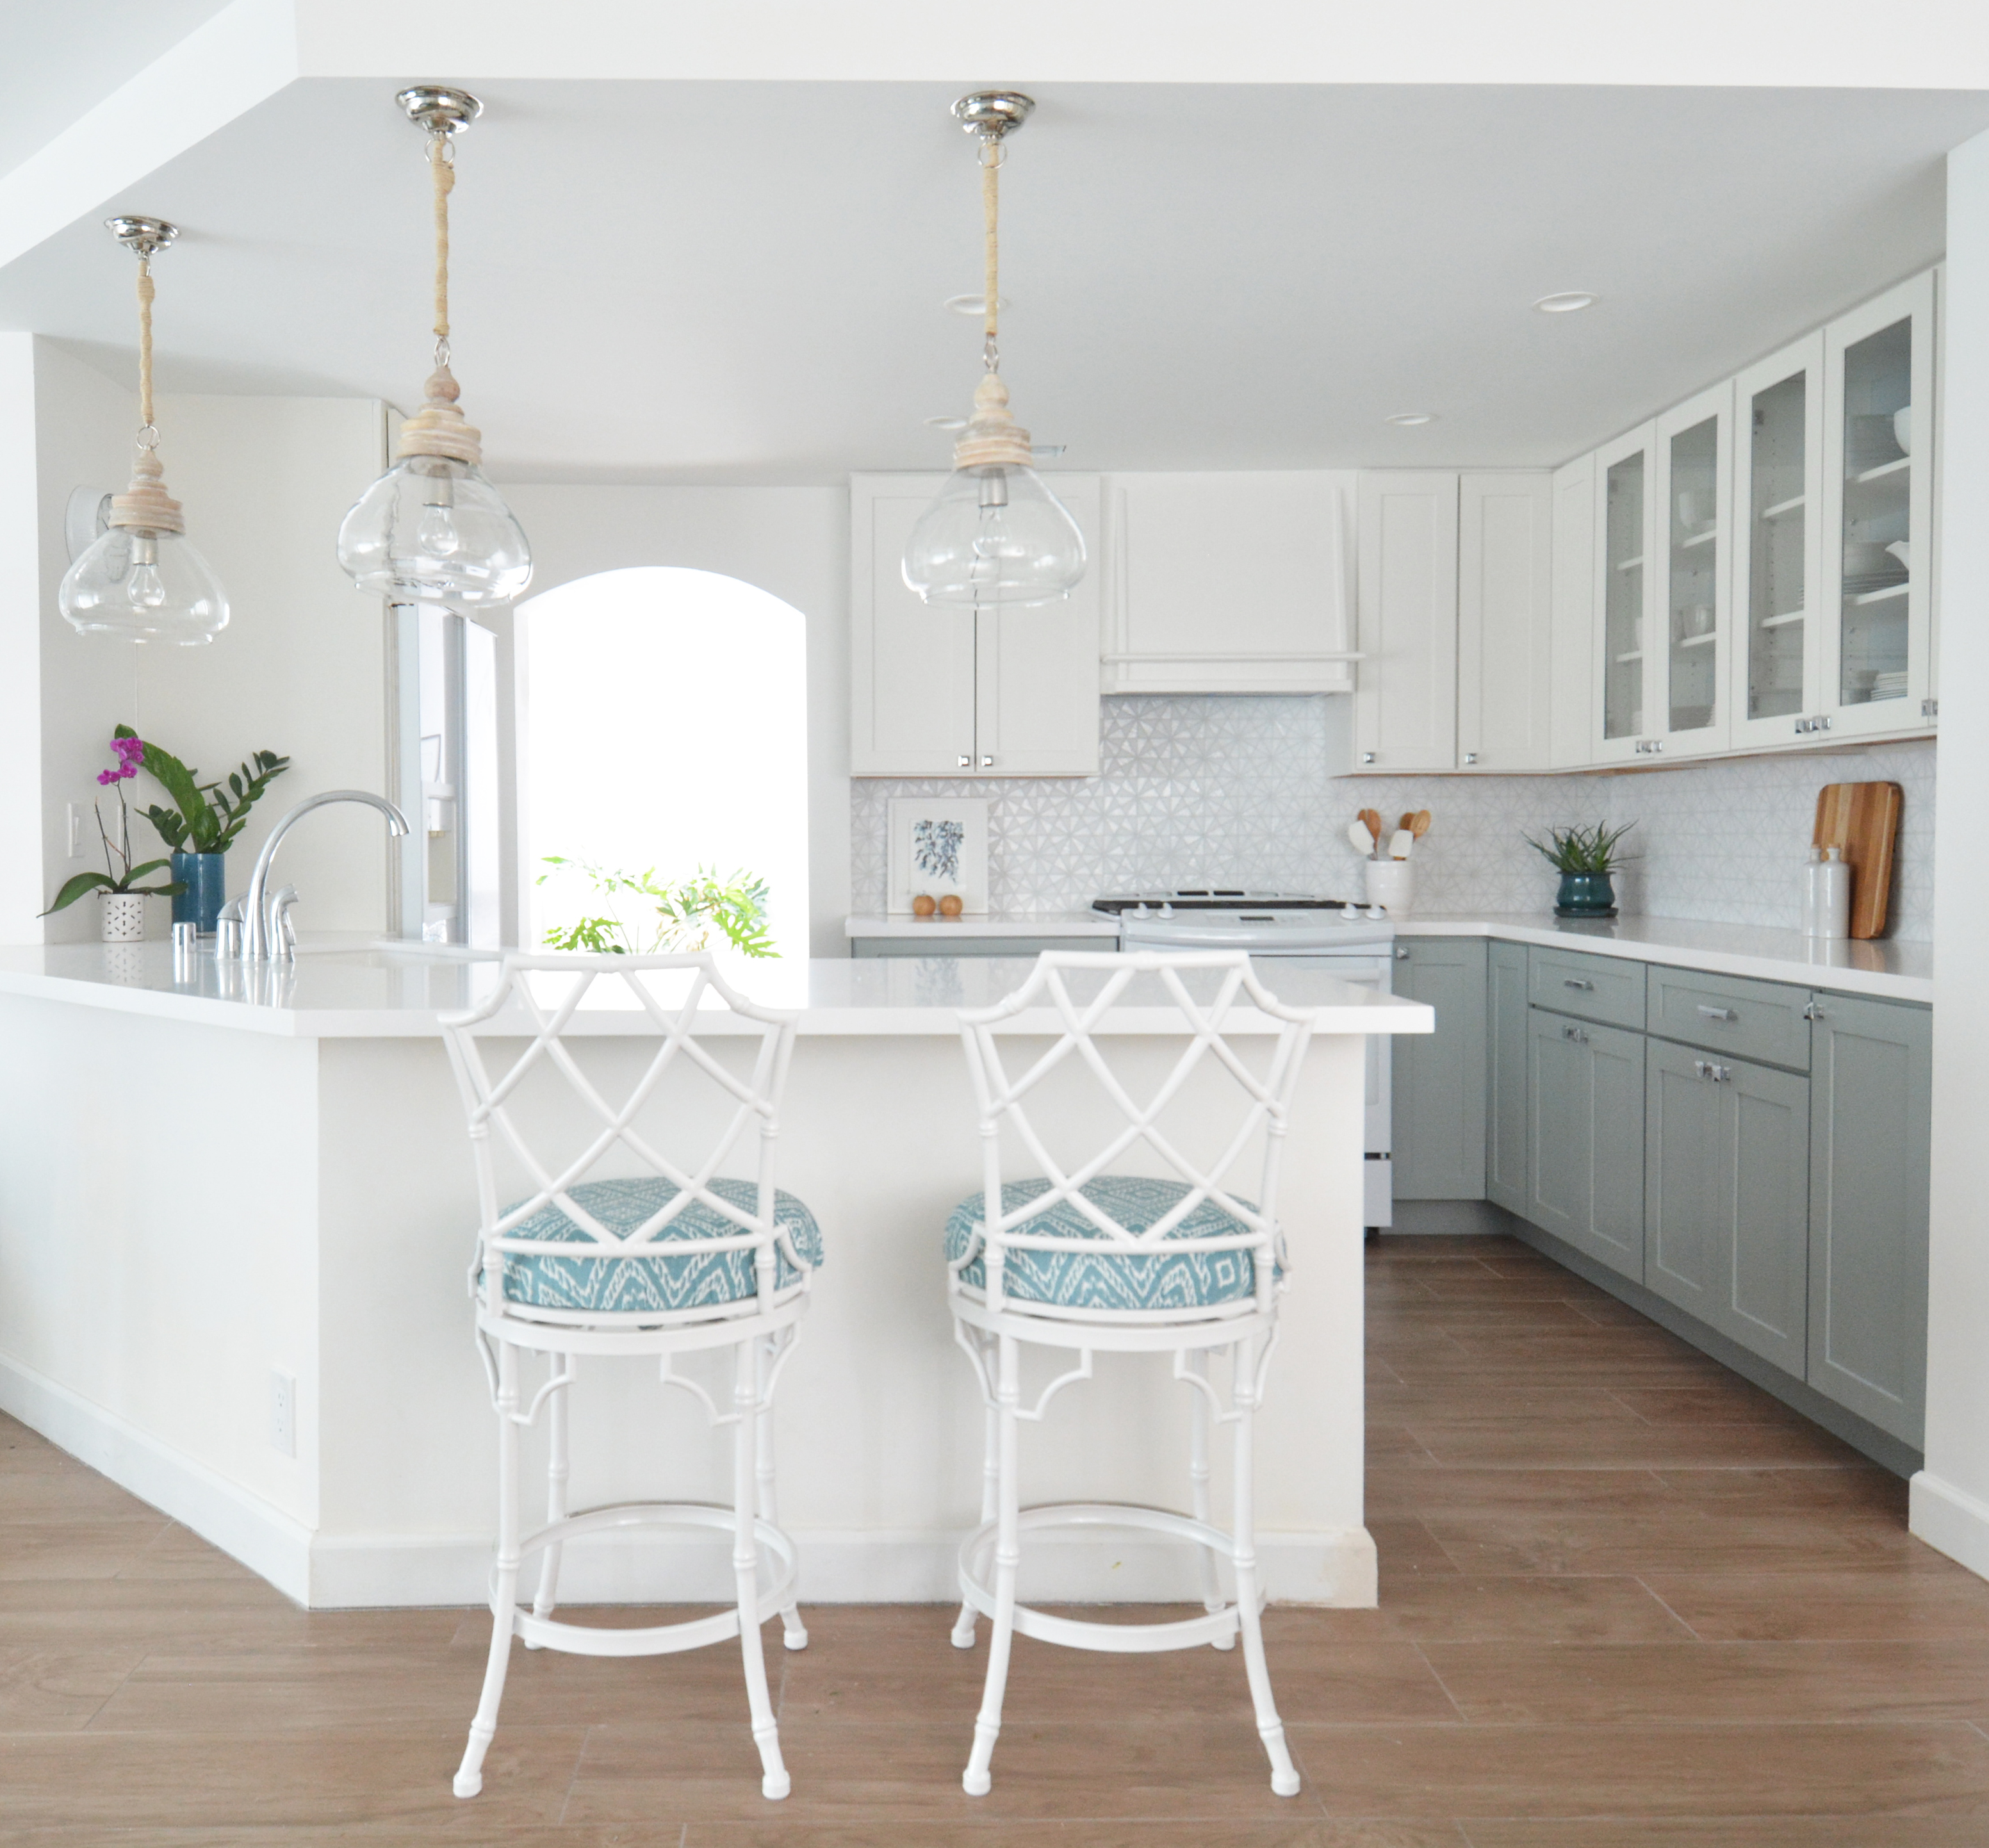 Remodeled Kitchens With White Cabinets: Centsational Style